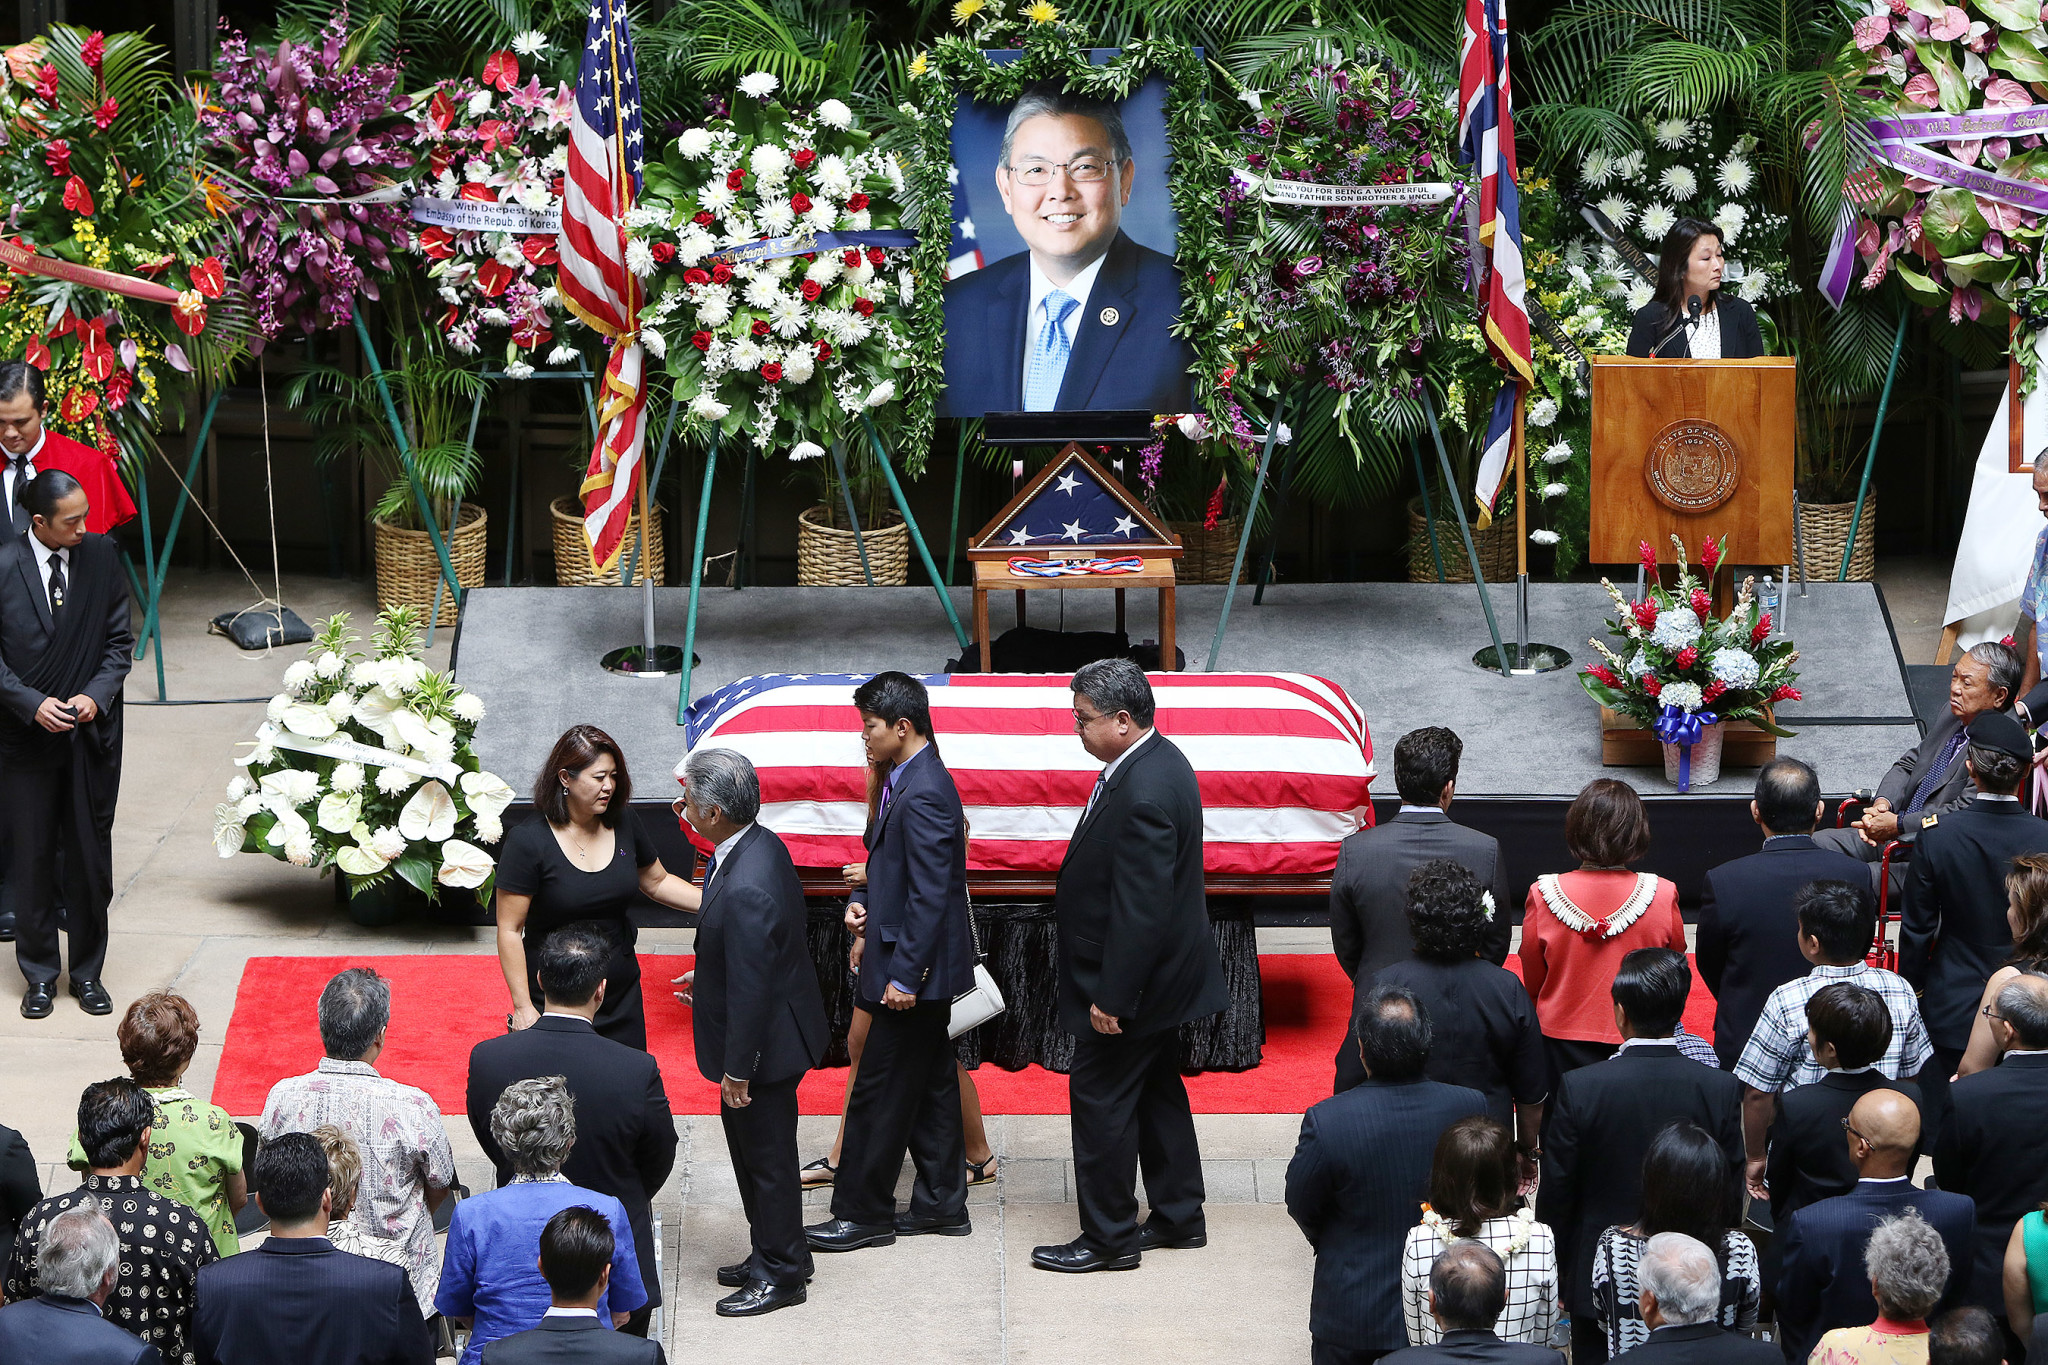 <p>Aug. 18: The late U.S. Rep. Mark Takai&#8217;s  casket rests in the Capitol Rotunda as his wife, Sami, greets Gov. David Ige during a memorial service. After serving 20 years in the state House of Representatives, Takai, 49, was unable to complete his first full term in Congress. <em>Cory Lum/Civil Beat</em></p>